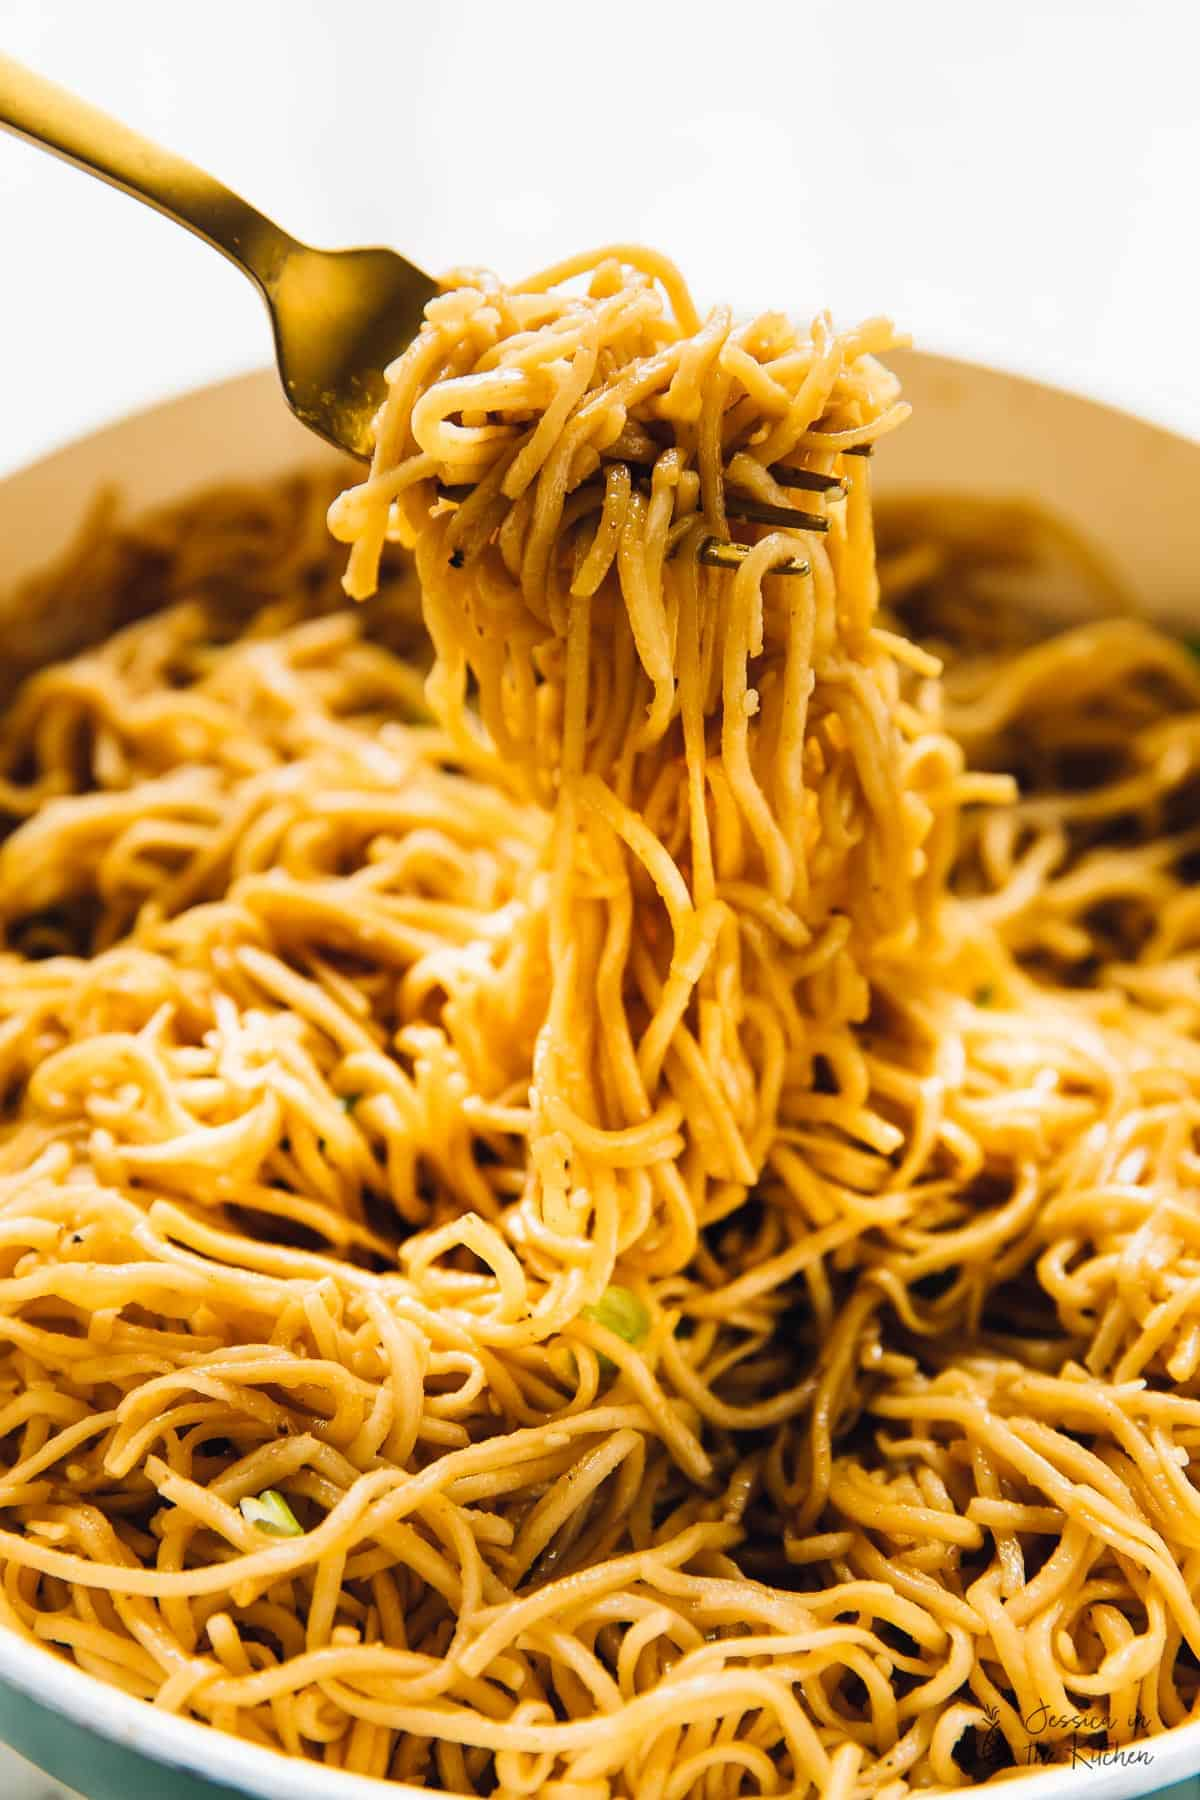 A fork holding up sesame noodles, over a bowl of noodles.